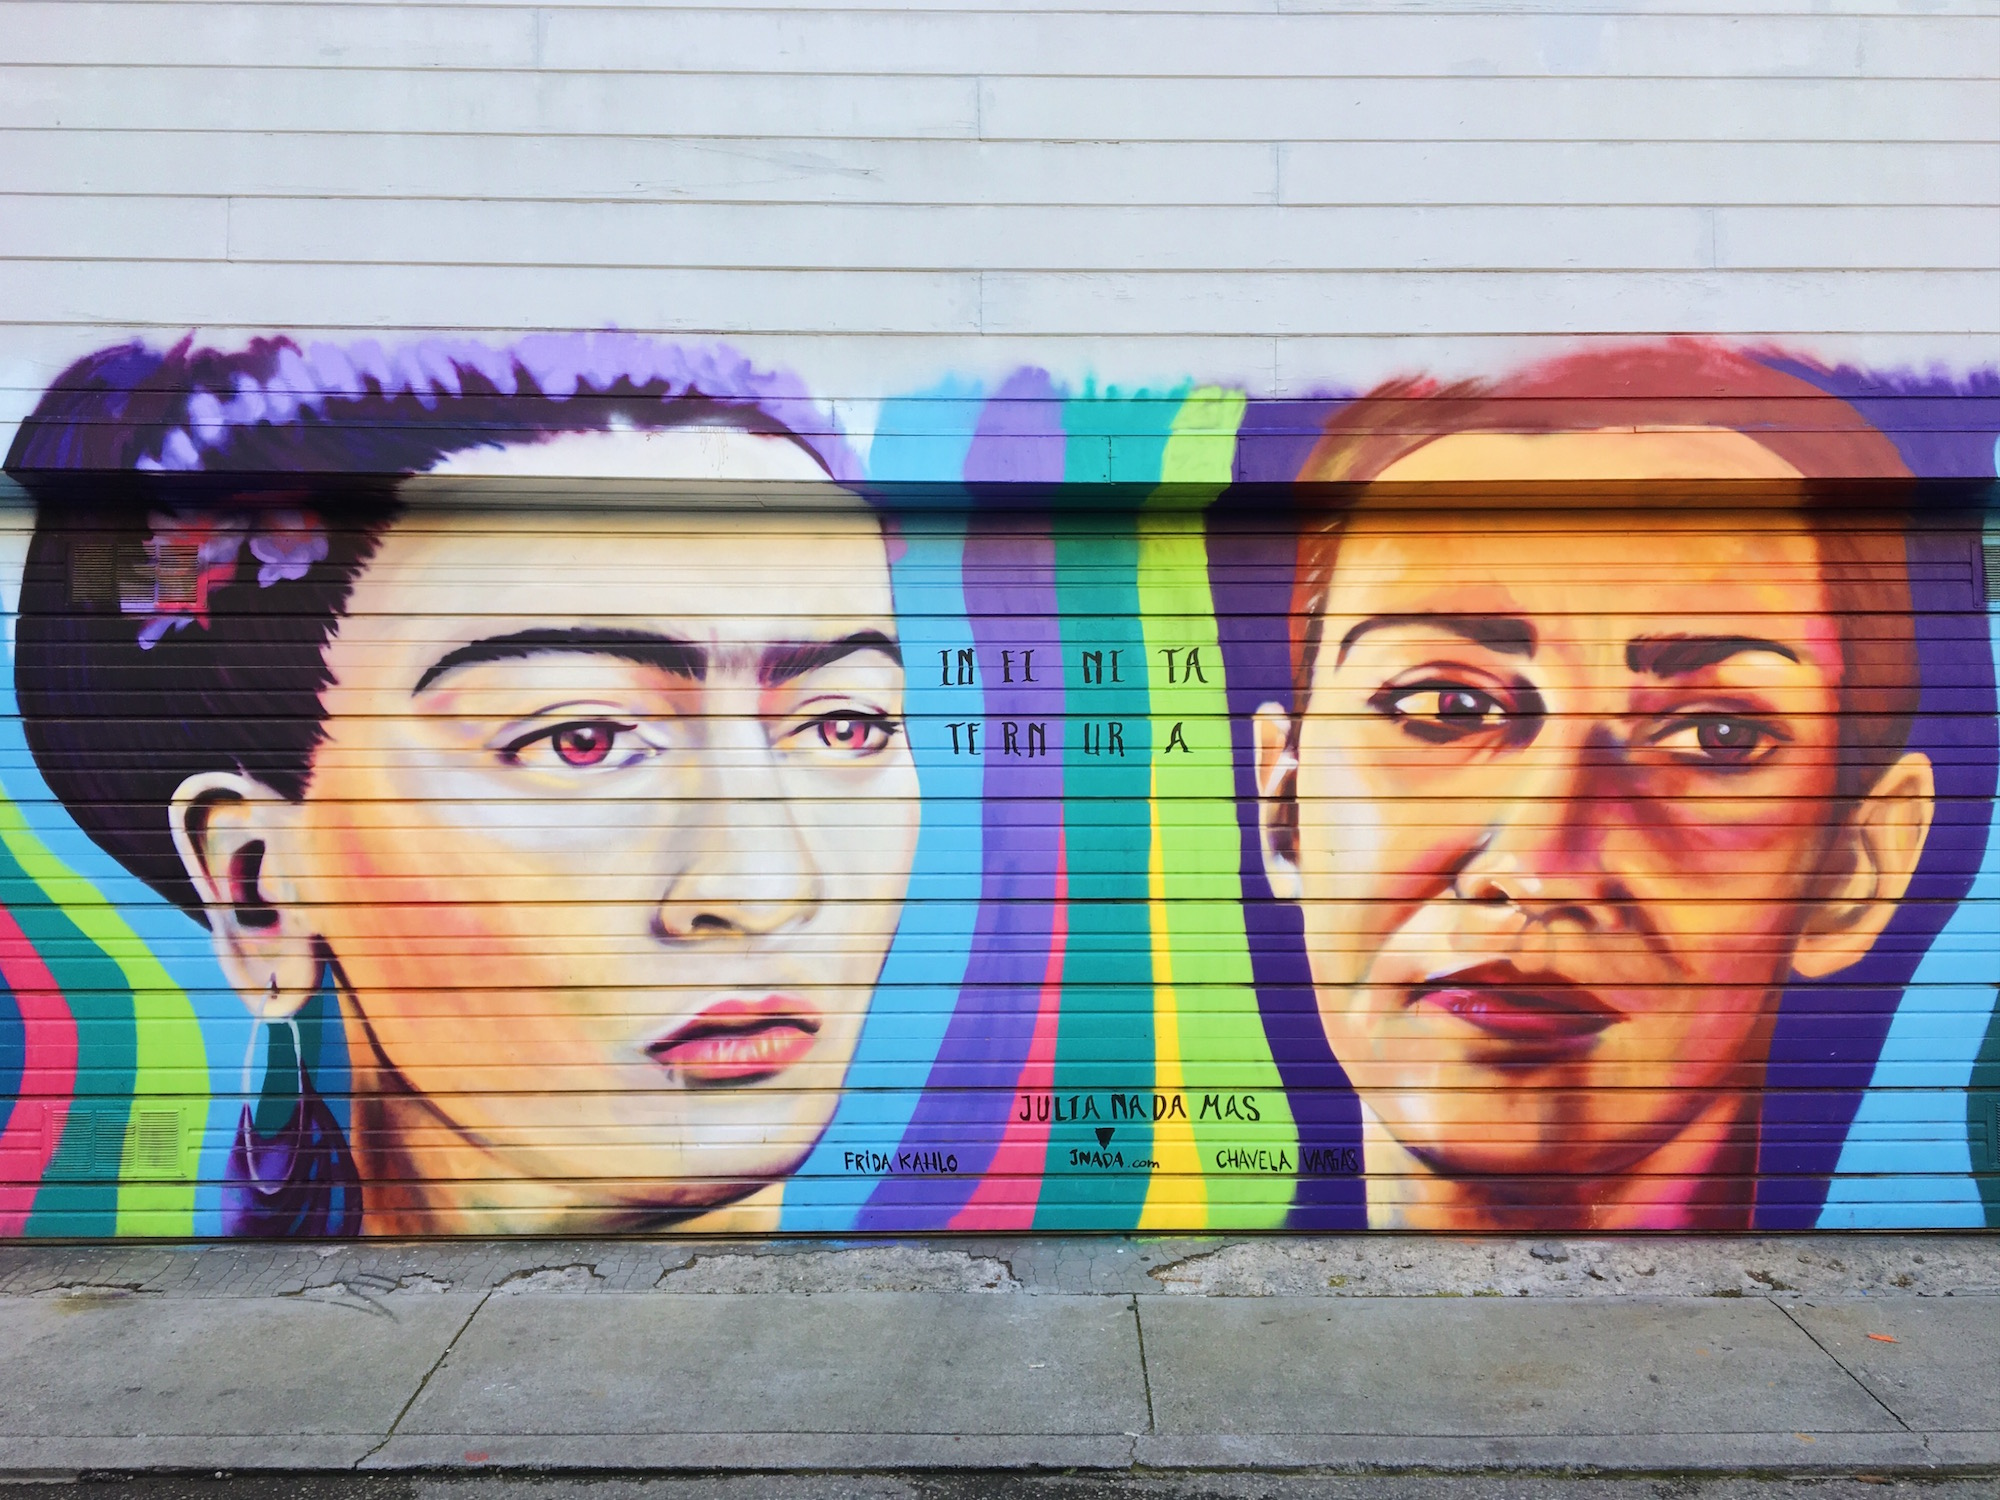 I murales di Mission a San Francisco - Infinita Ternura (2014) - Artist, Julia Nada - Location, Lucky St & 25th St, Mission